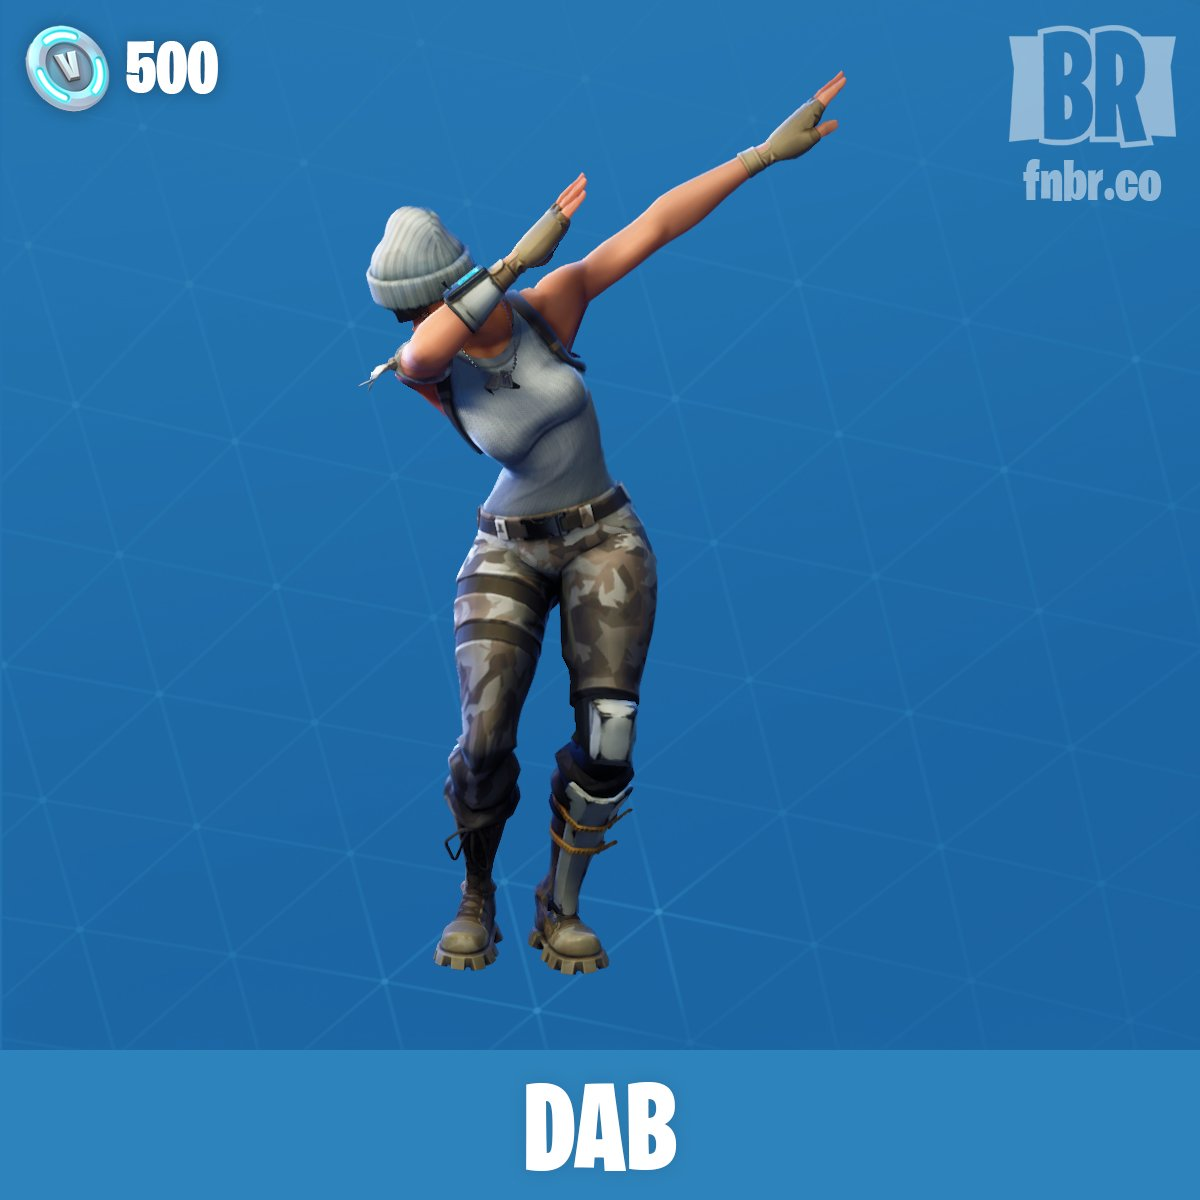 Fortnite News On Twitter Today S Items Horrified slow clap gif on imgur horrified slow clap. twitter